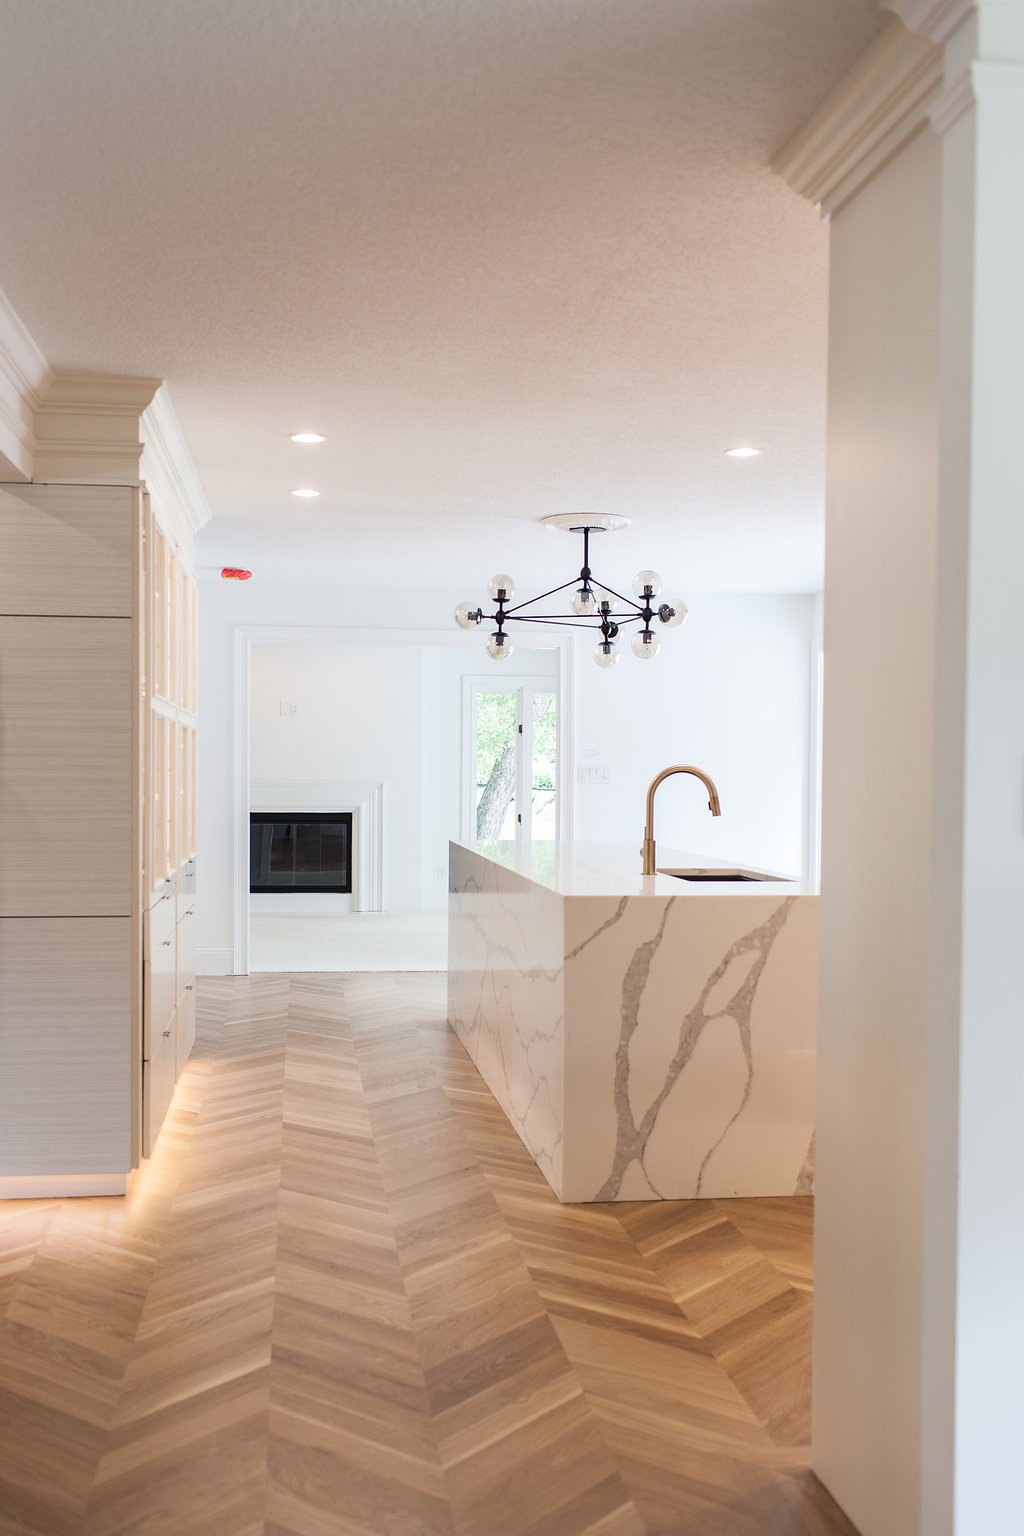 Kitchen, Engineered Quartz, White, Wood, Medium Hardwood, Light Hardwood, Laminate, Stone Slab, Ceiling, Floor, Accent, Recessed, and Undermount K I T C H E N  to L I V I N G   Kitchen Laminate Engineered Quartz Ceiling Photos from Brentwood